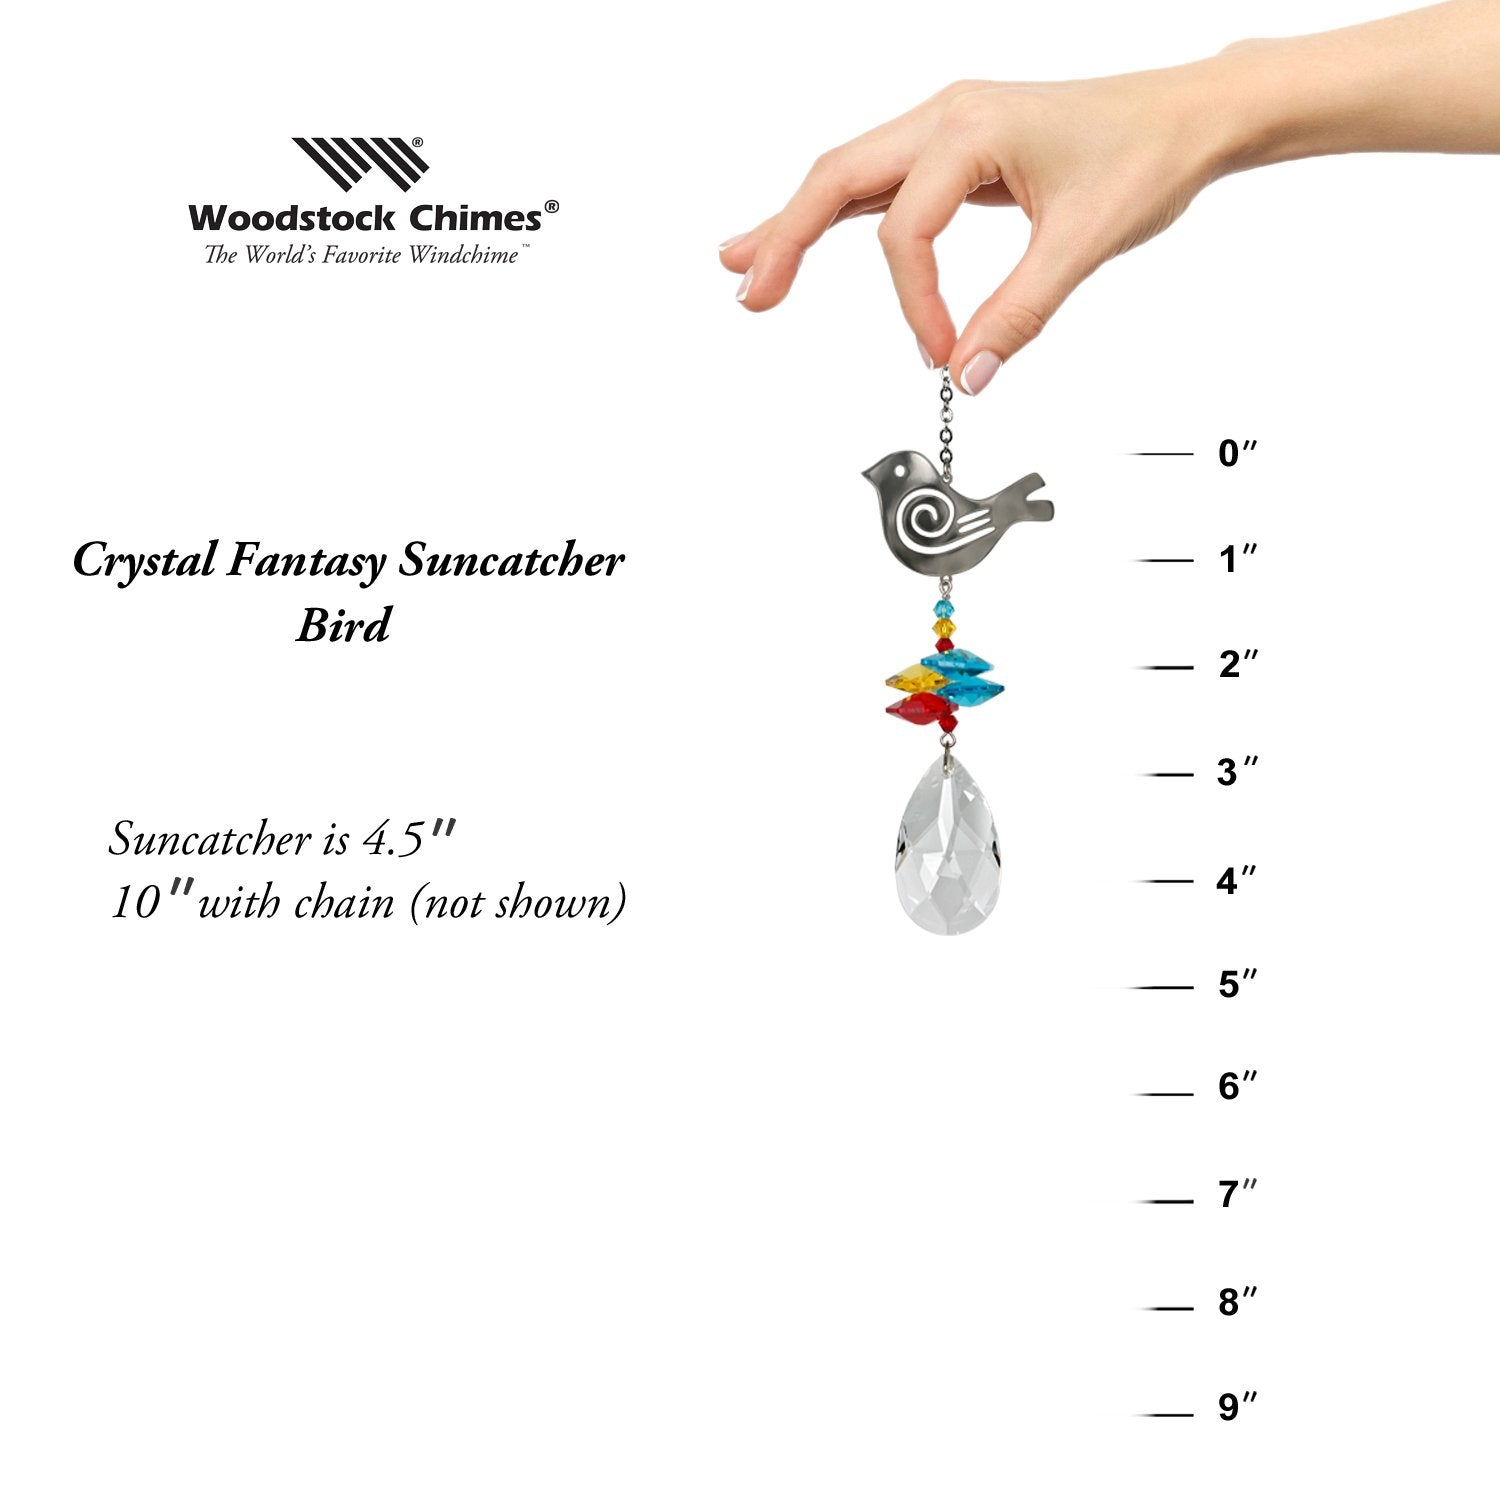 Crystal Fantasy Suncatcher - Bird proportion image